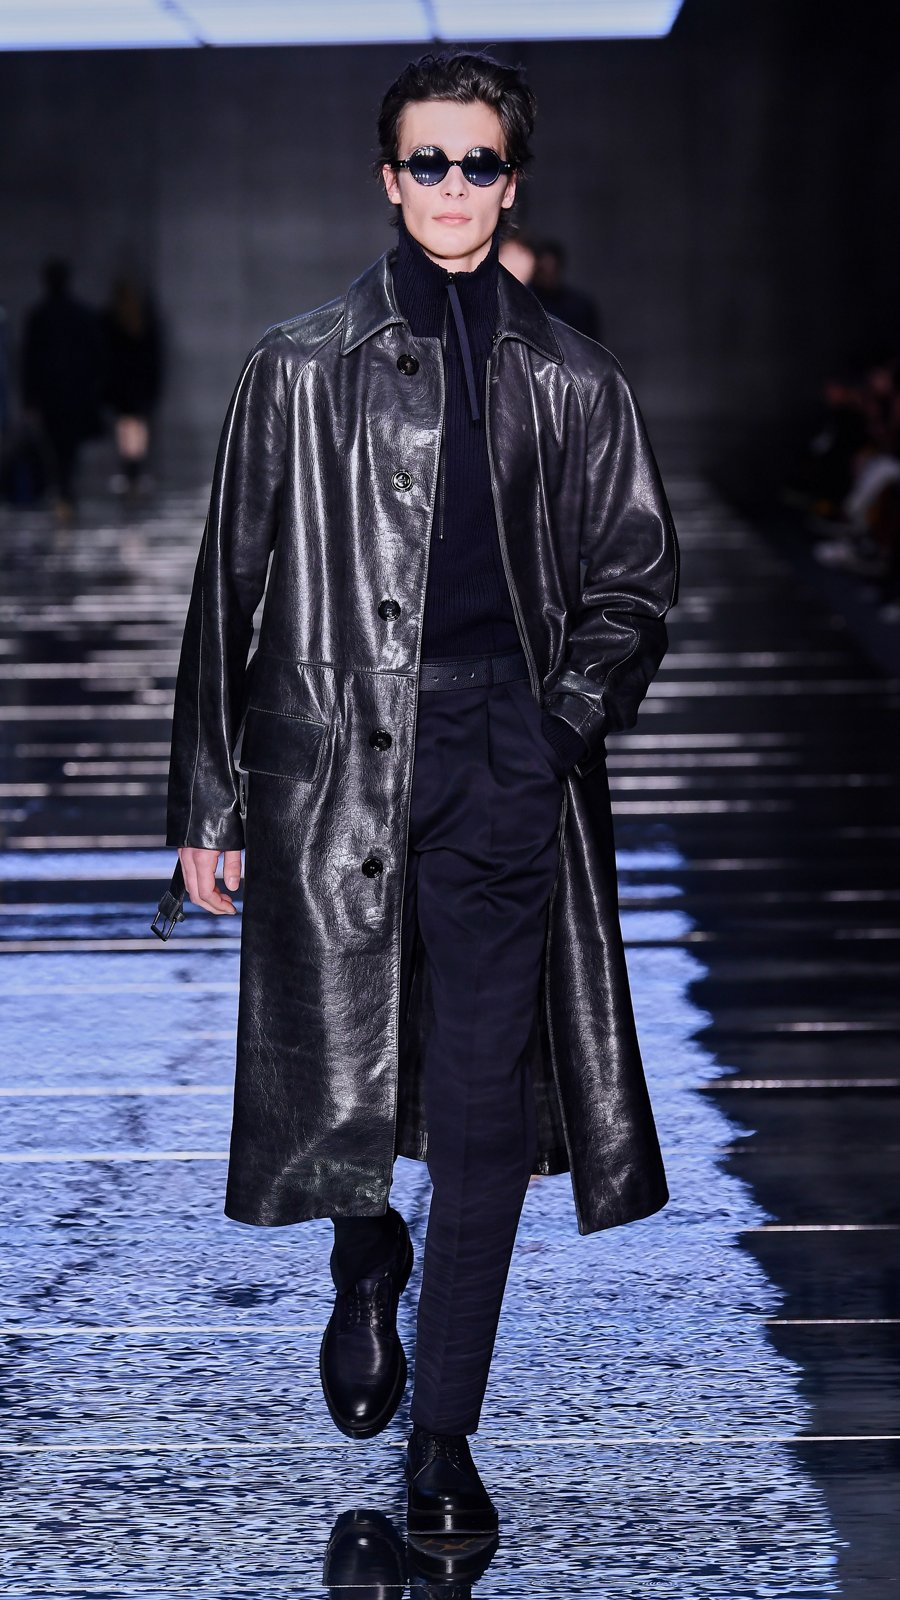 e7e80754a86296 Runway look from the BOSS fashion show Fall Winter 2019 ...